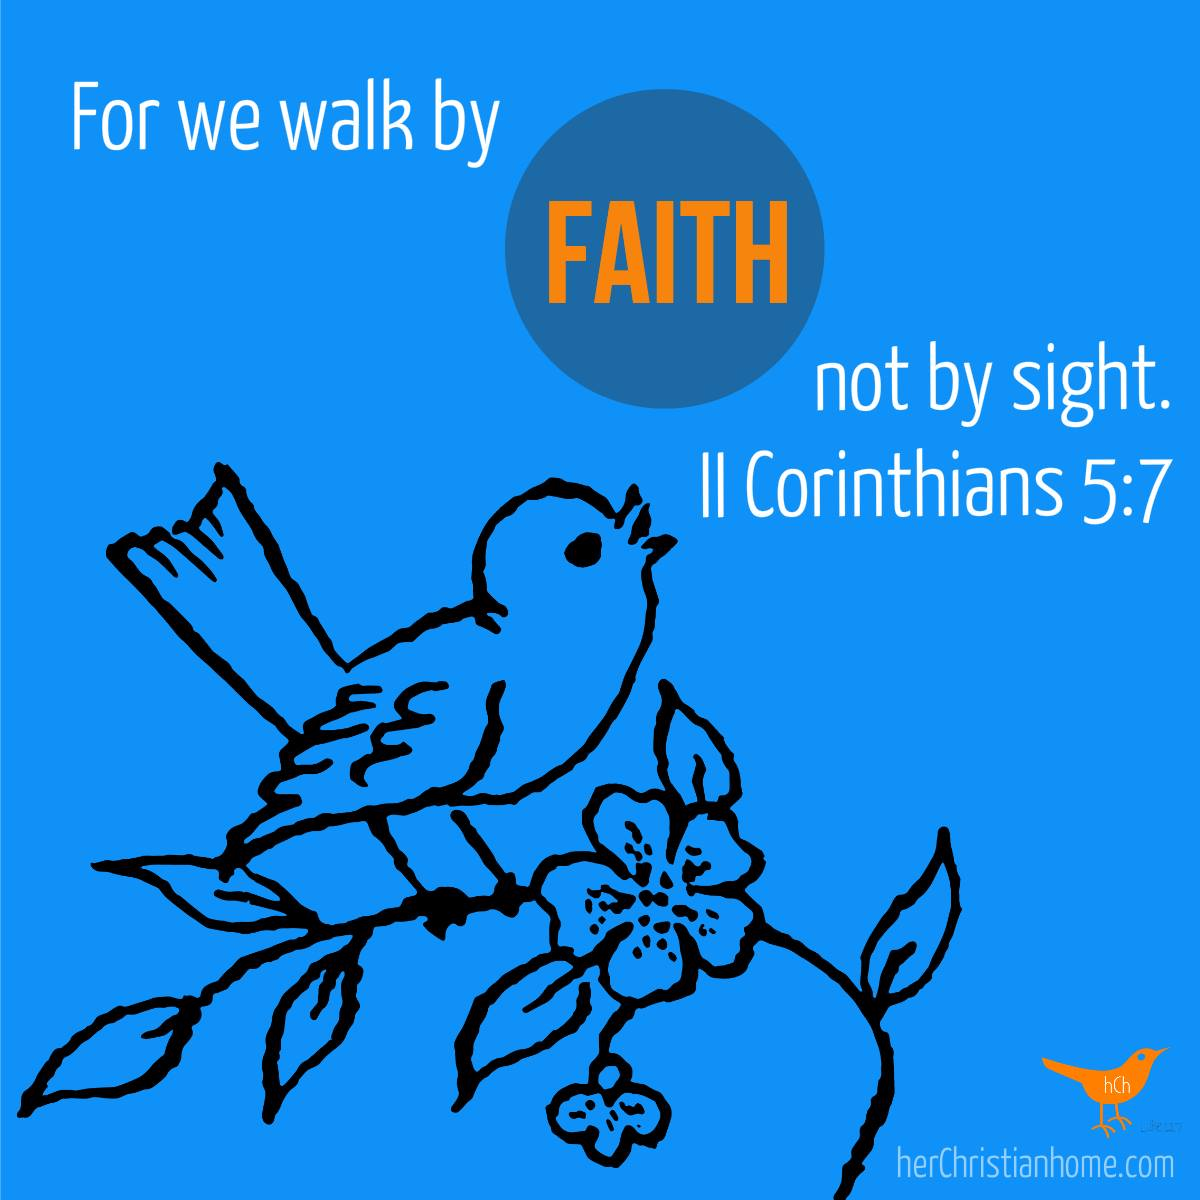 For We walk by faith not by sight. II Corinthians 5:7 KJV #faith #bibleverses #devotional sight. II Corinthians 5:7 KJV #